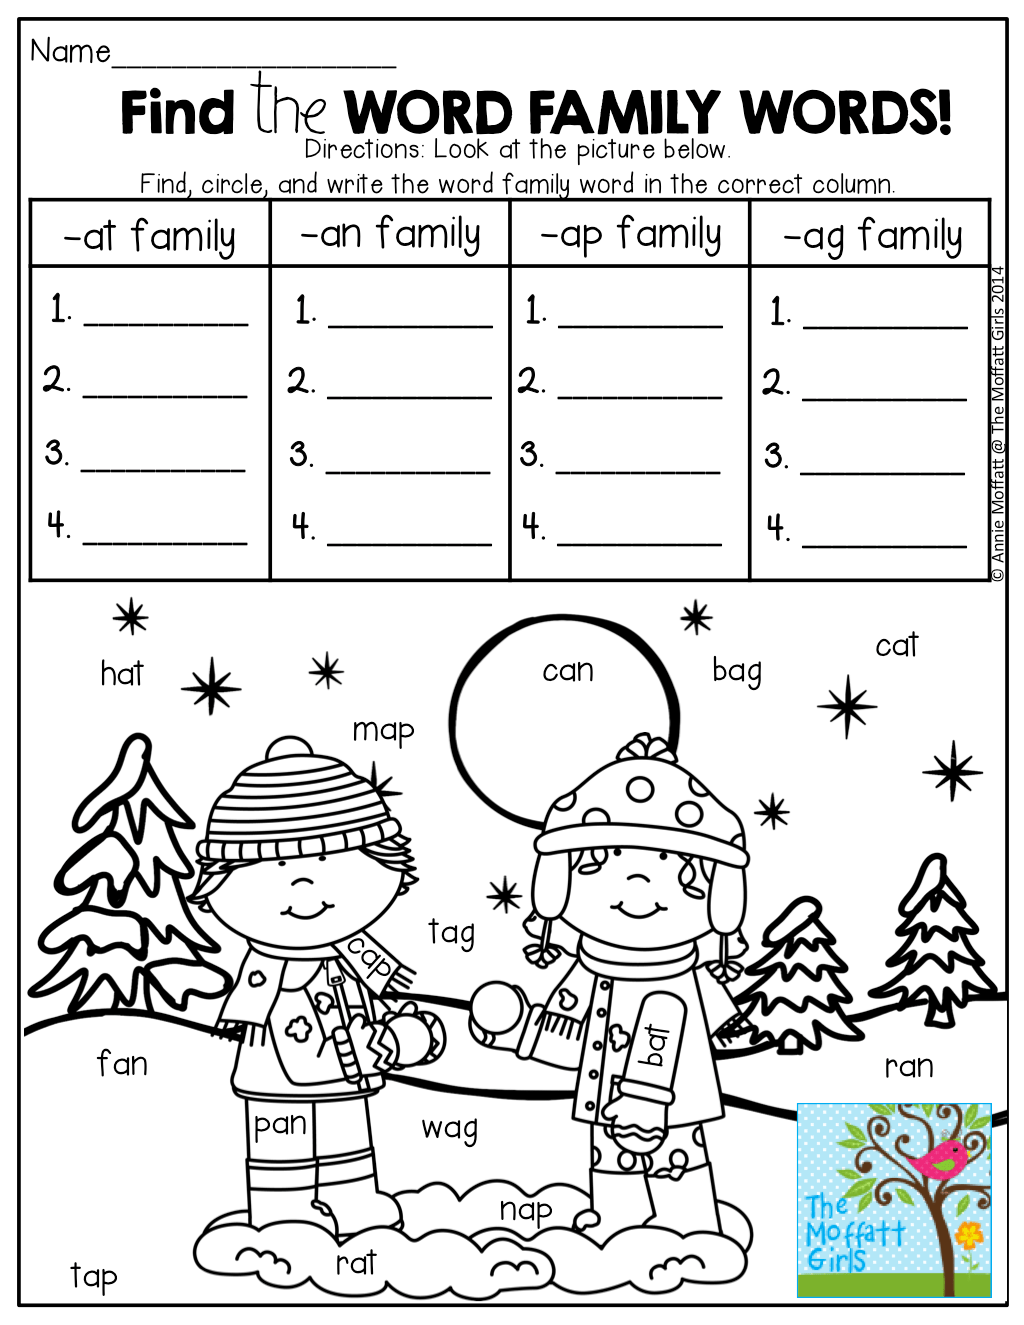 Worksheet Word Family Worksheet Grass Fedjp Worksheet Study Site